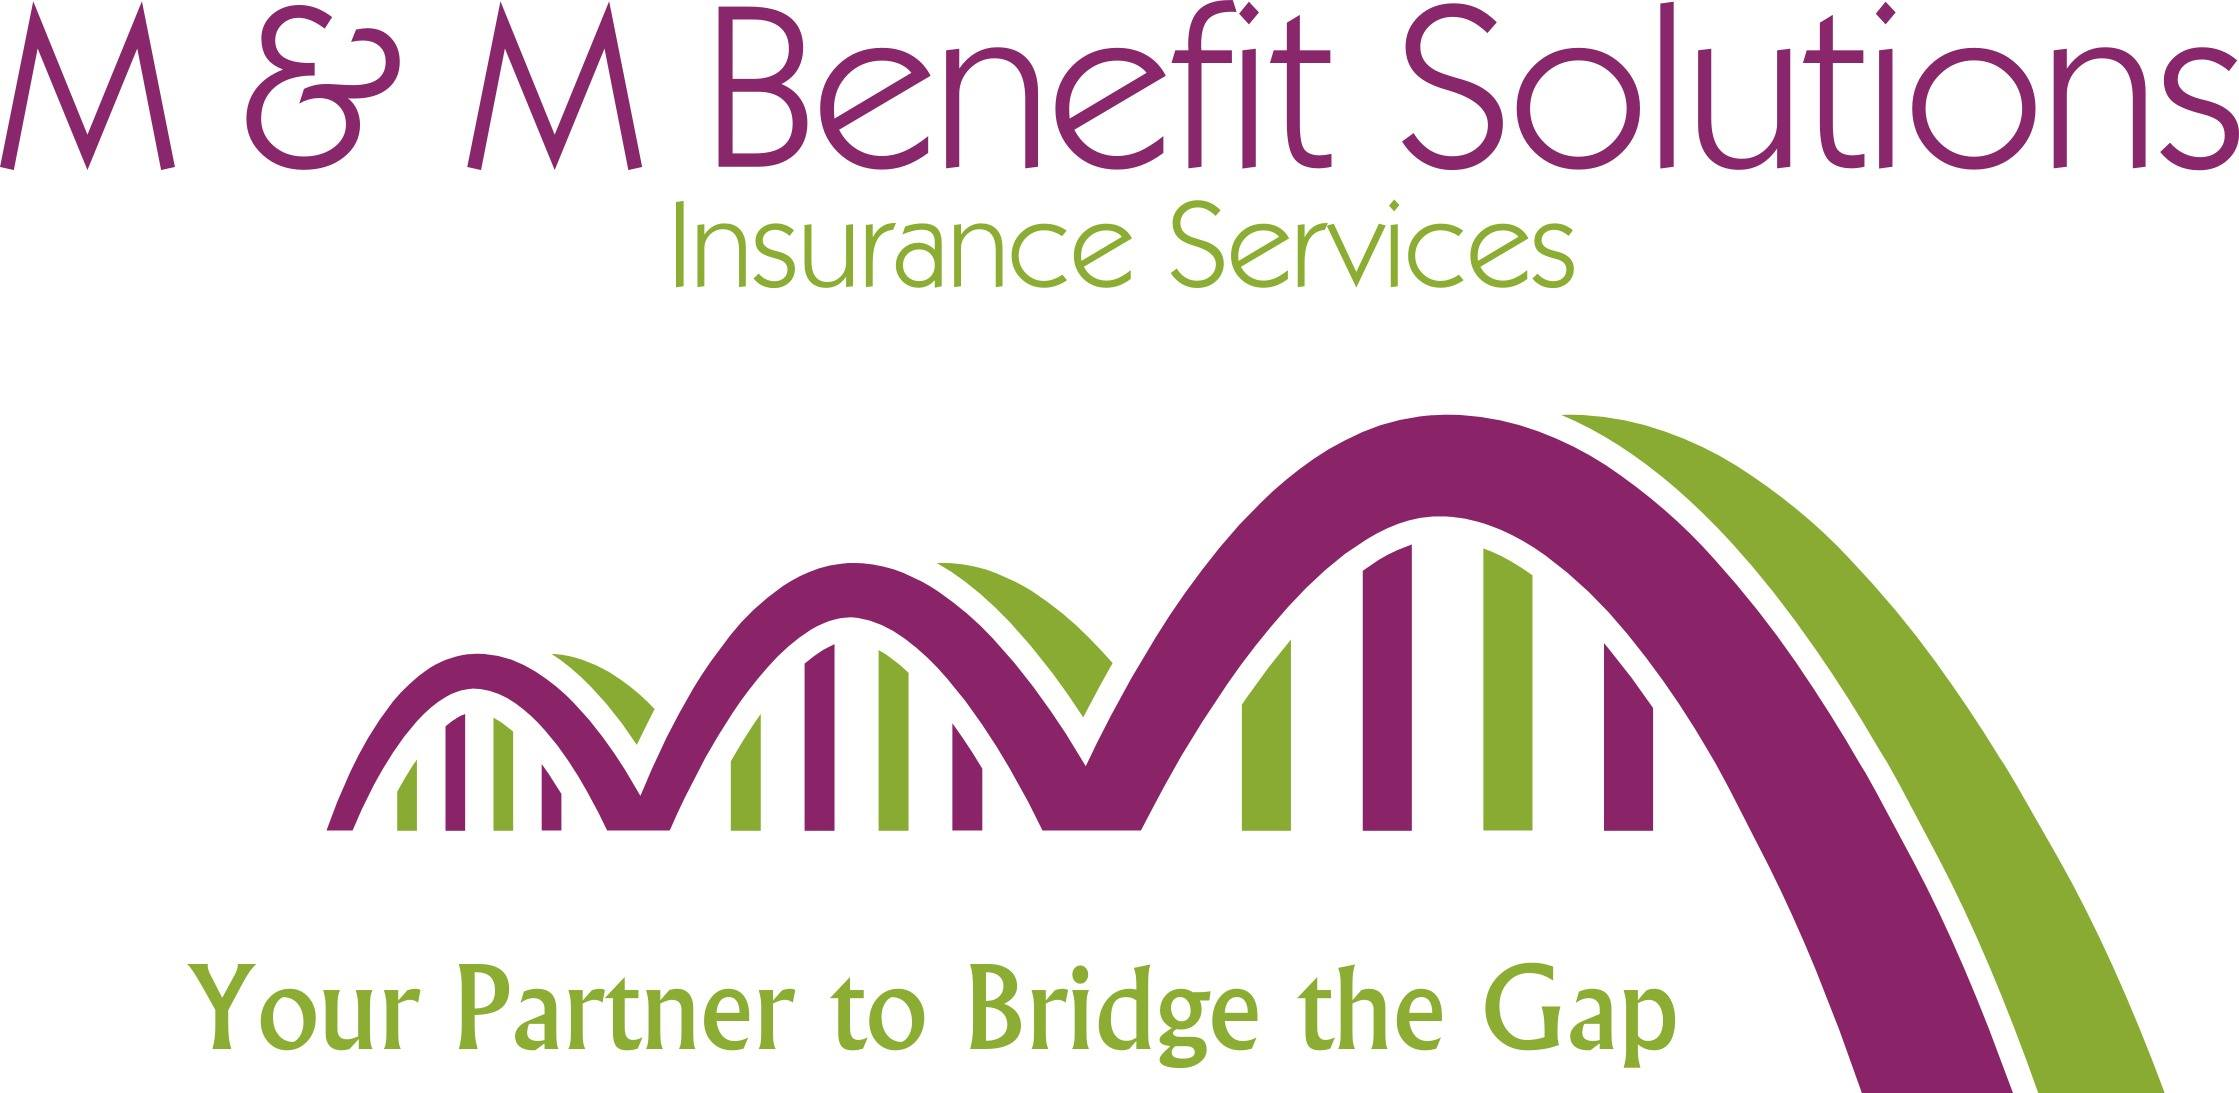 M&M Benefit Solutions - The employee benefits broker and group health insurance advisor in Tarzana